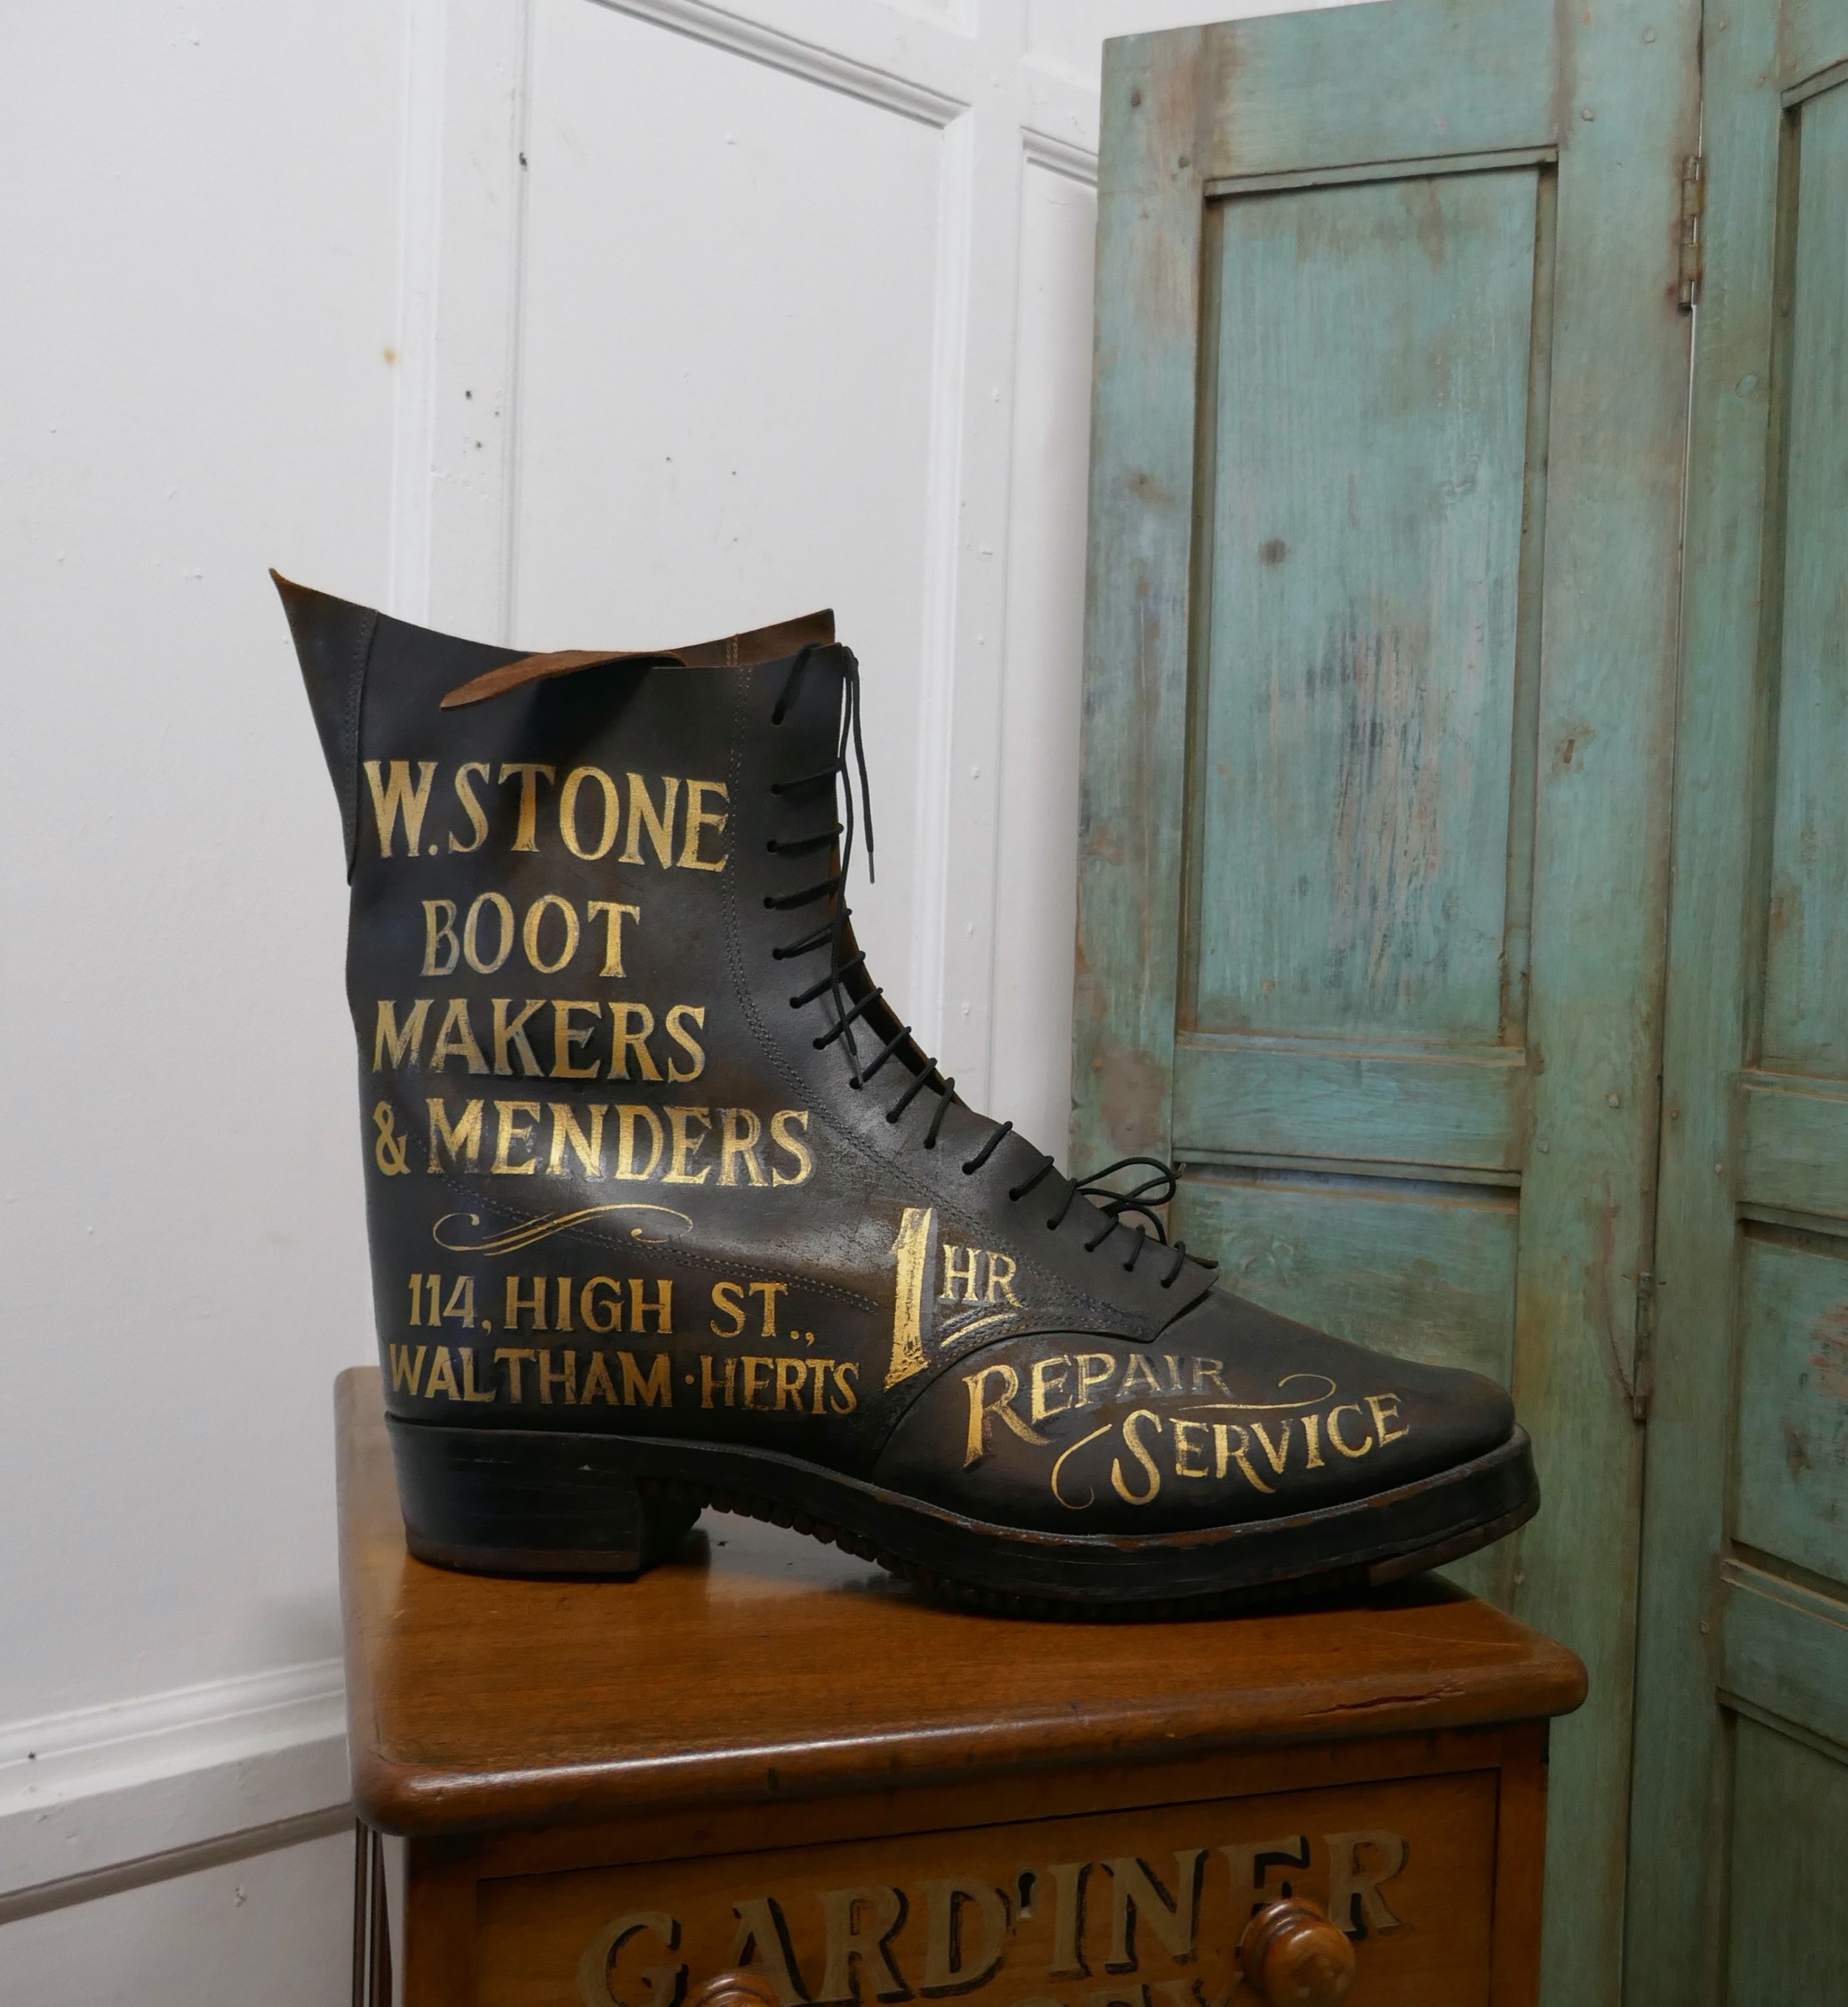 edwardian shoe shop or cobblers trade sign leather boot display model